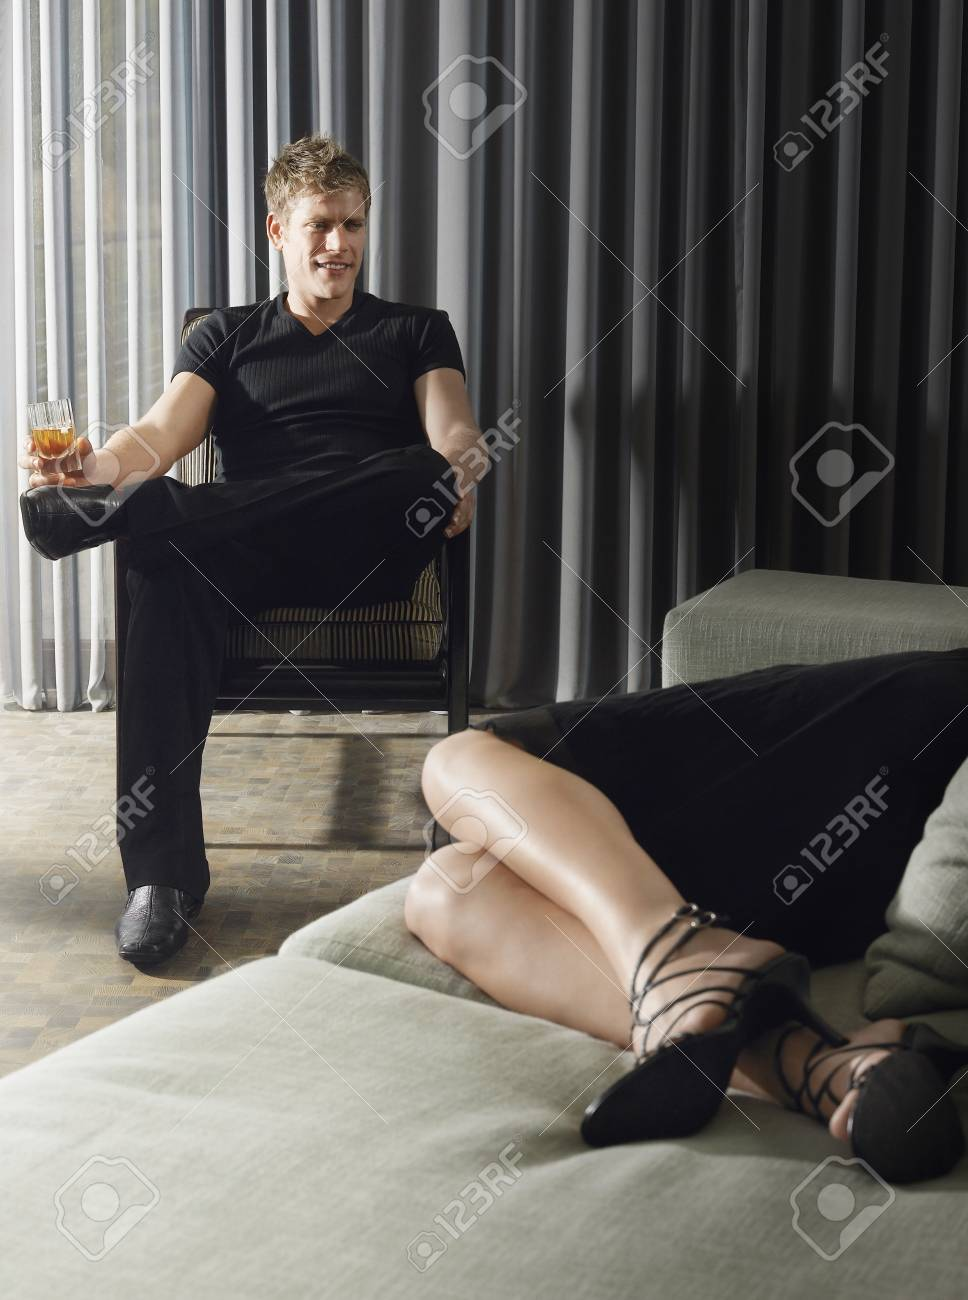 Man sitting with an alcoholic drink with woman reclining on sofa in living room Stock Photo - 18898568